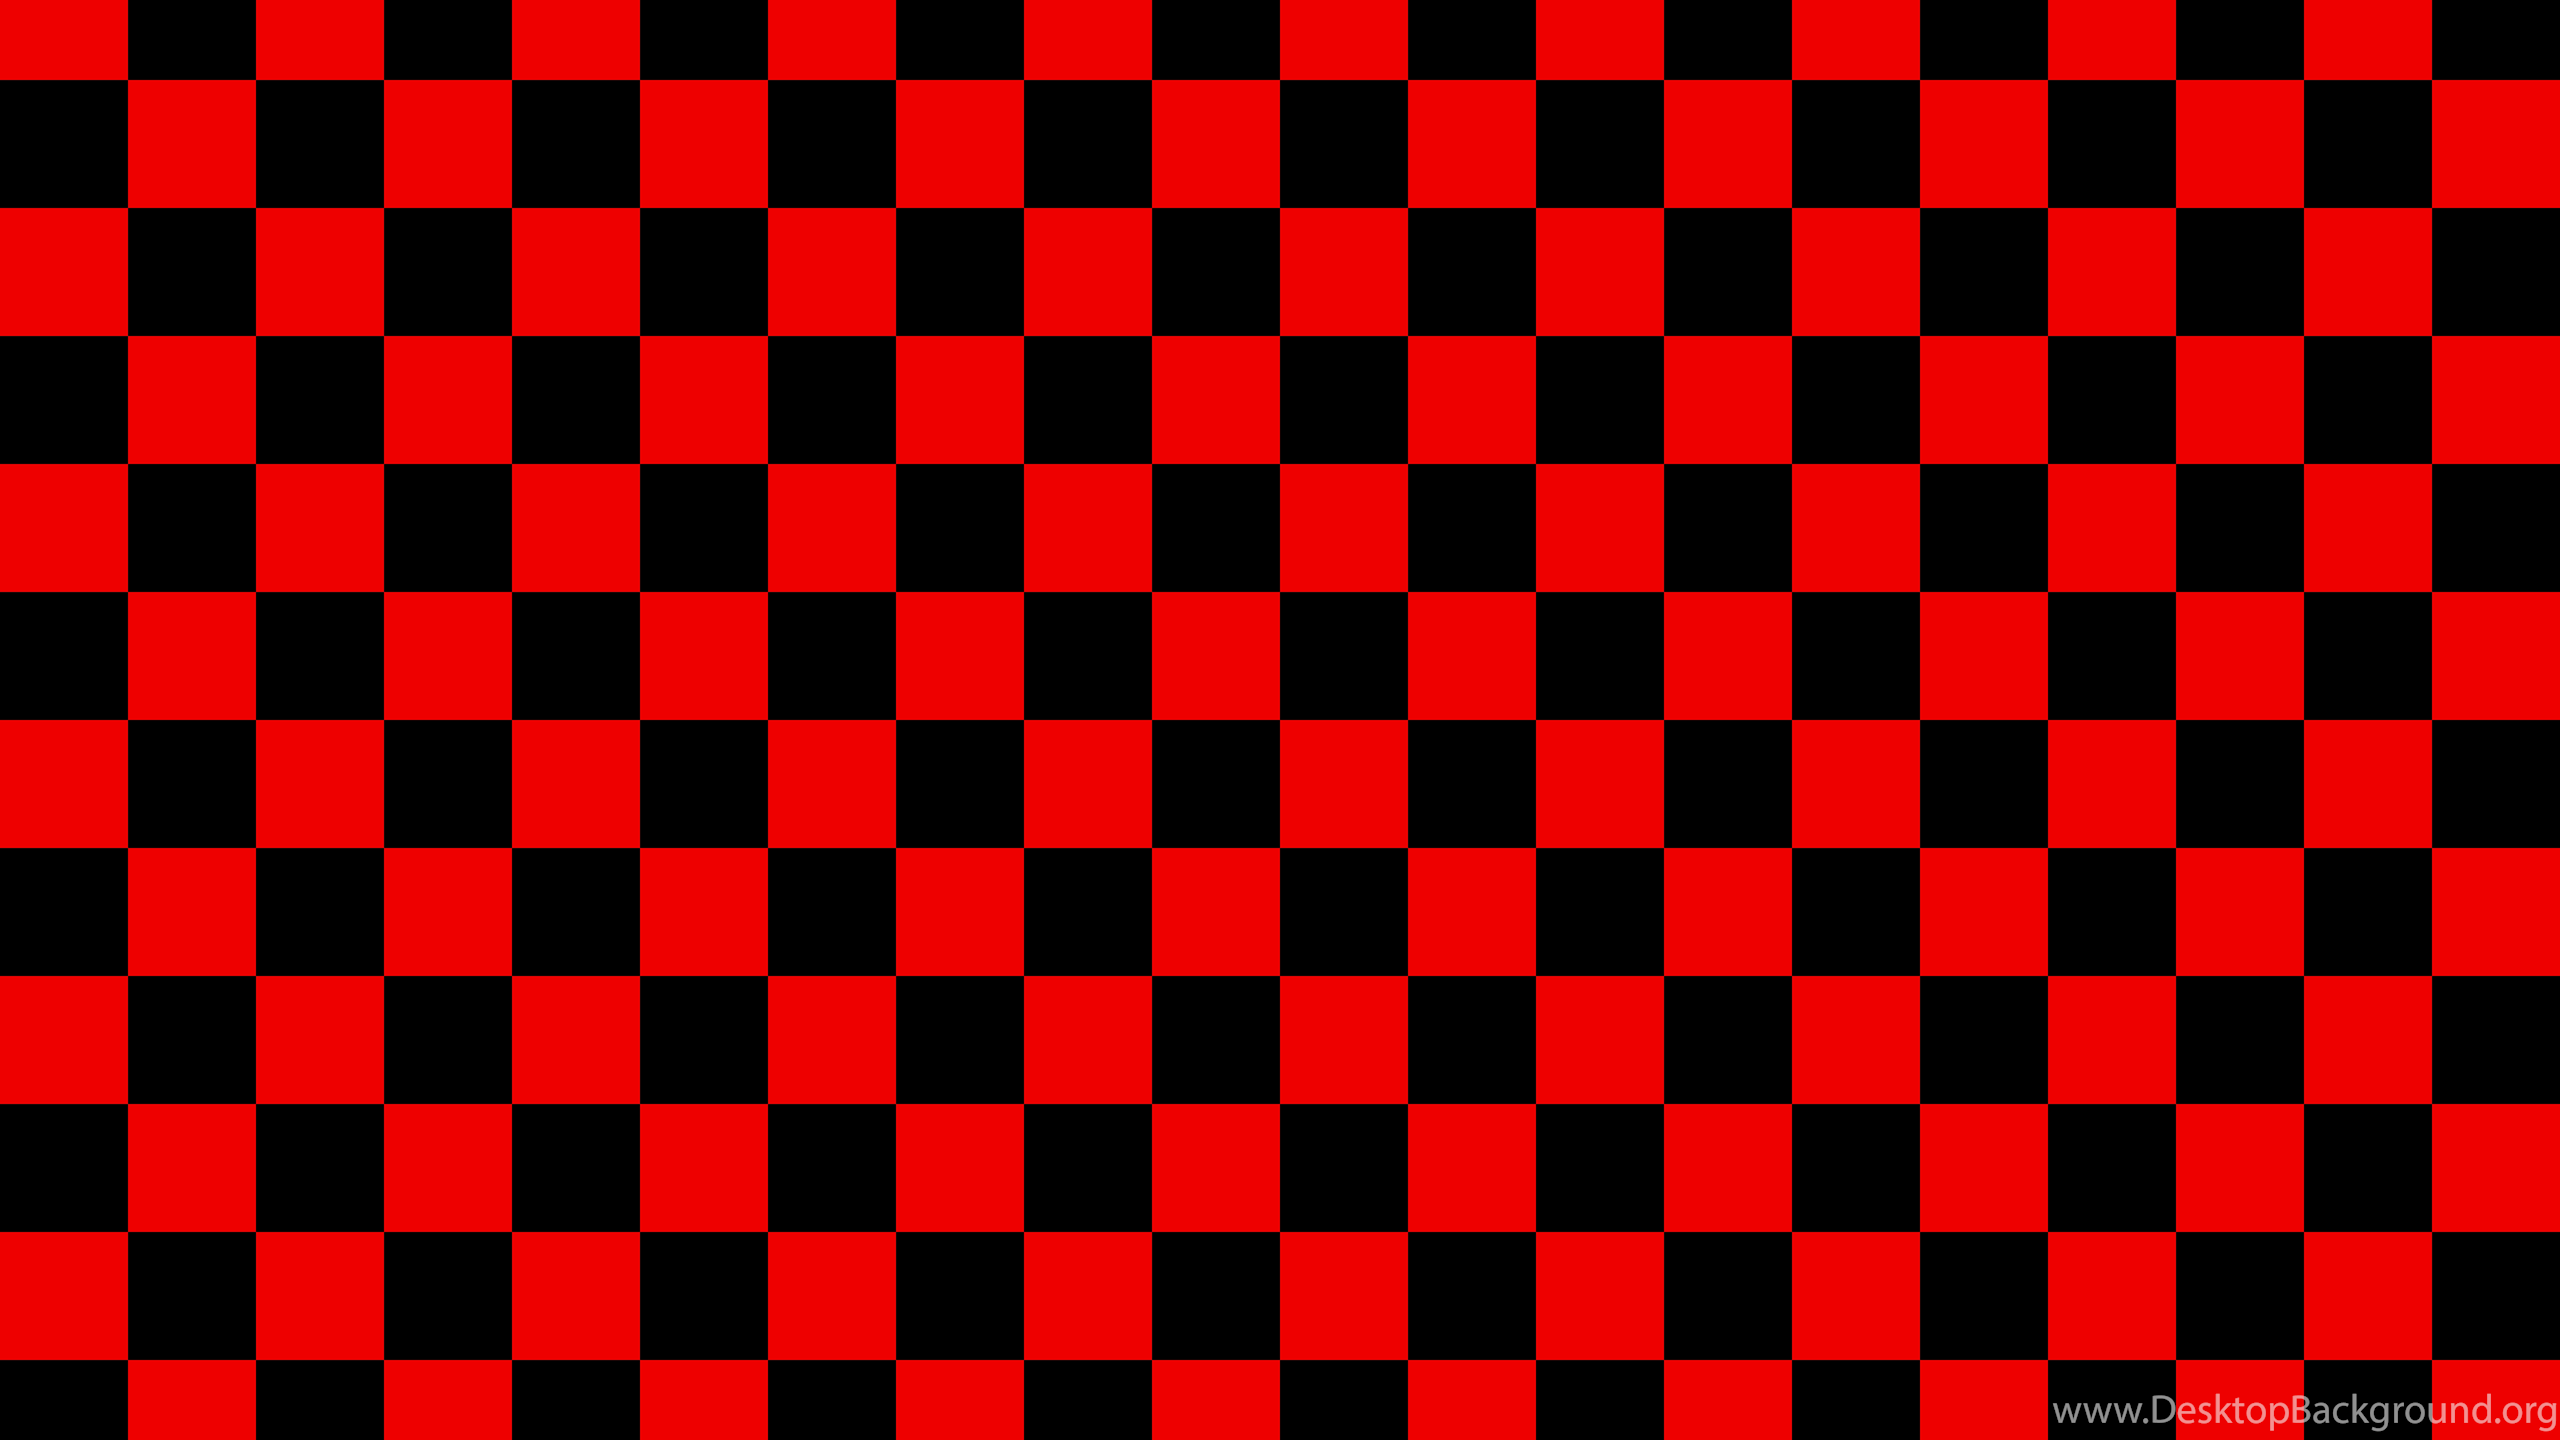 45 Checkerboard Wallpapers Download At Wallpaperbro Checker Wallpaper Checkerboard Wallpaper Downloads